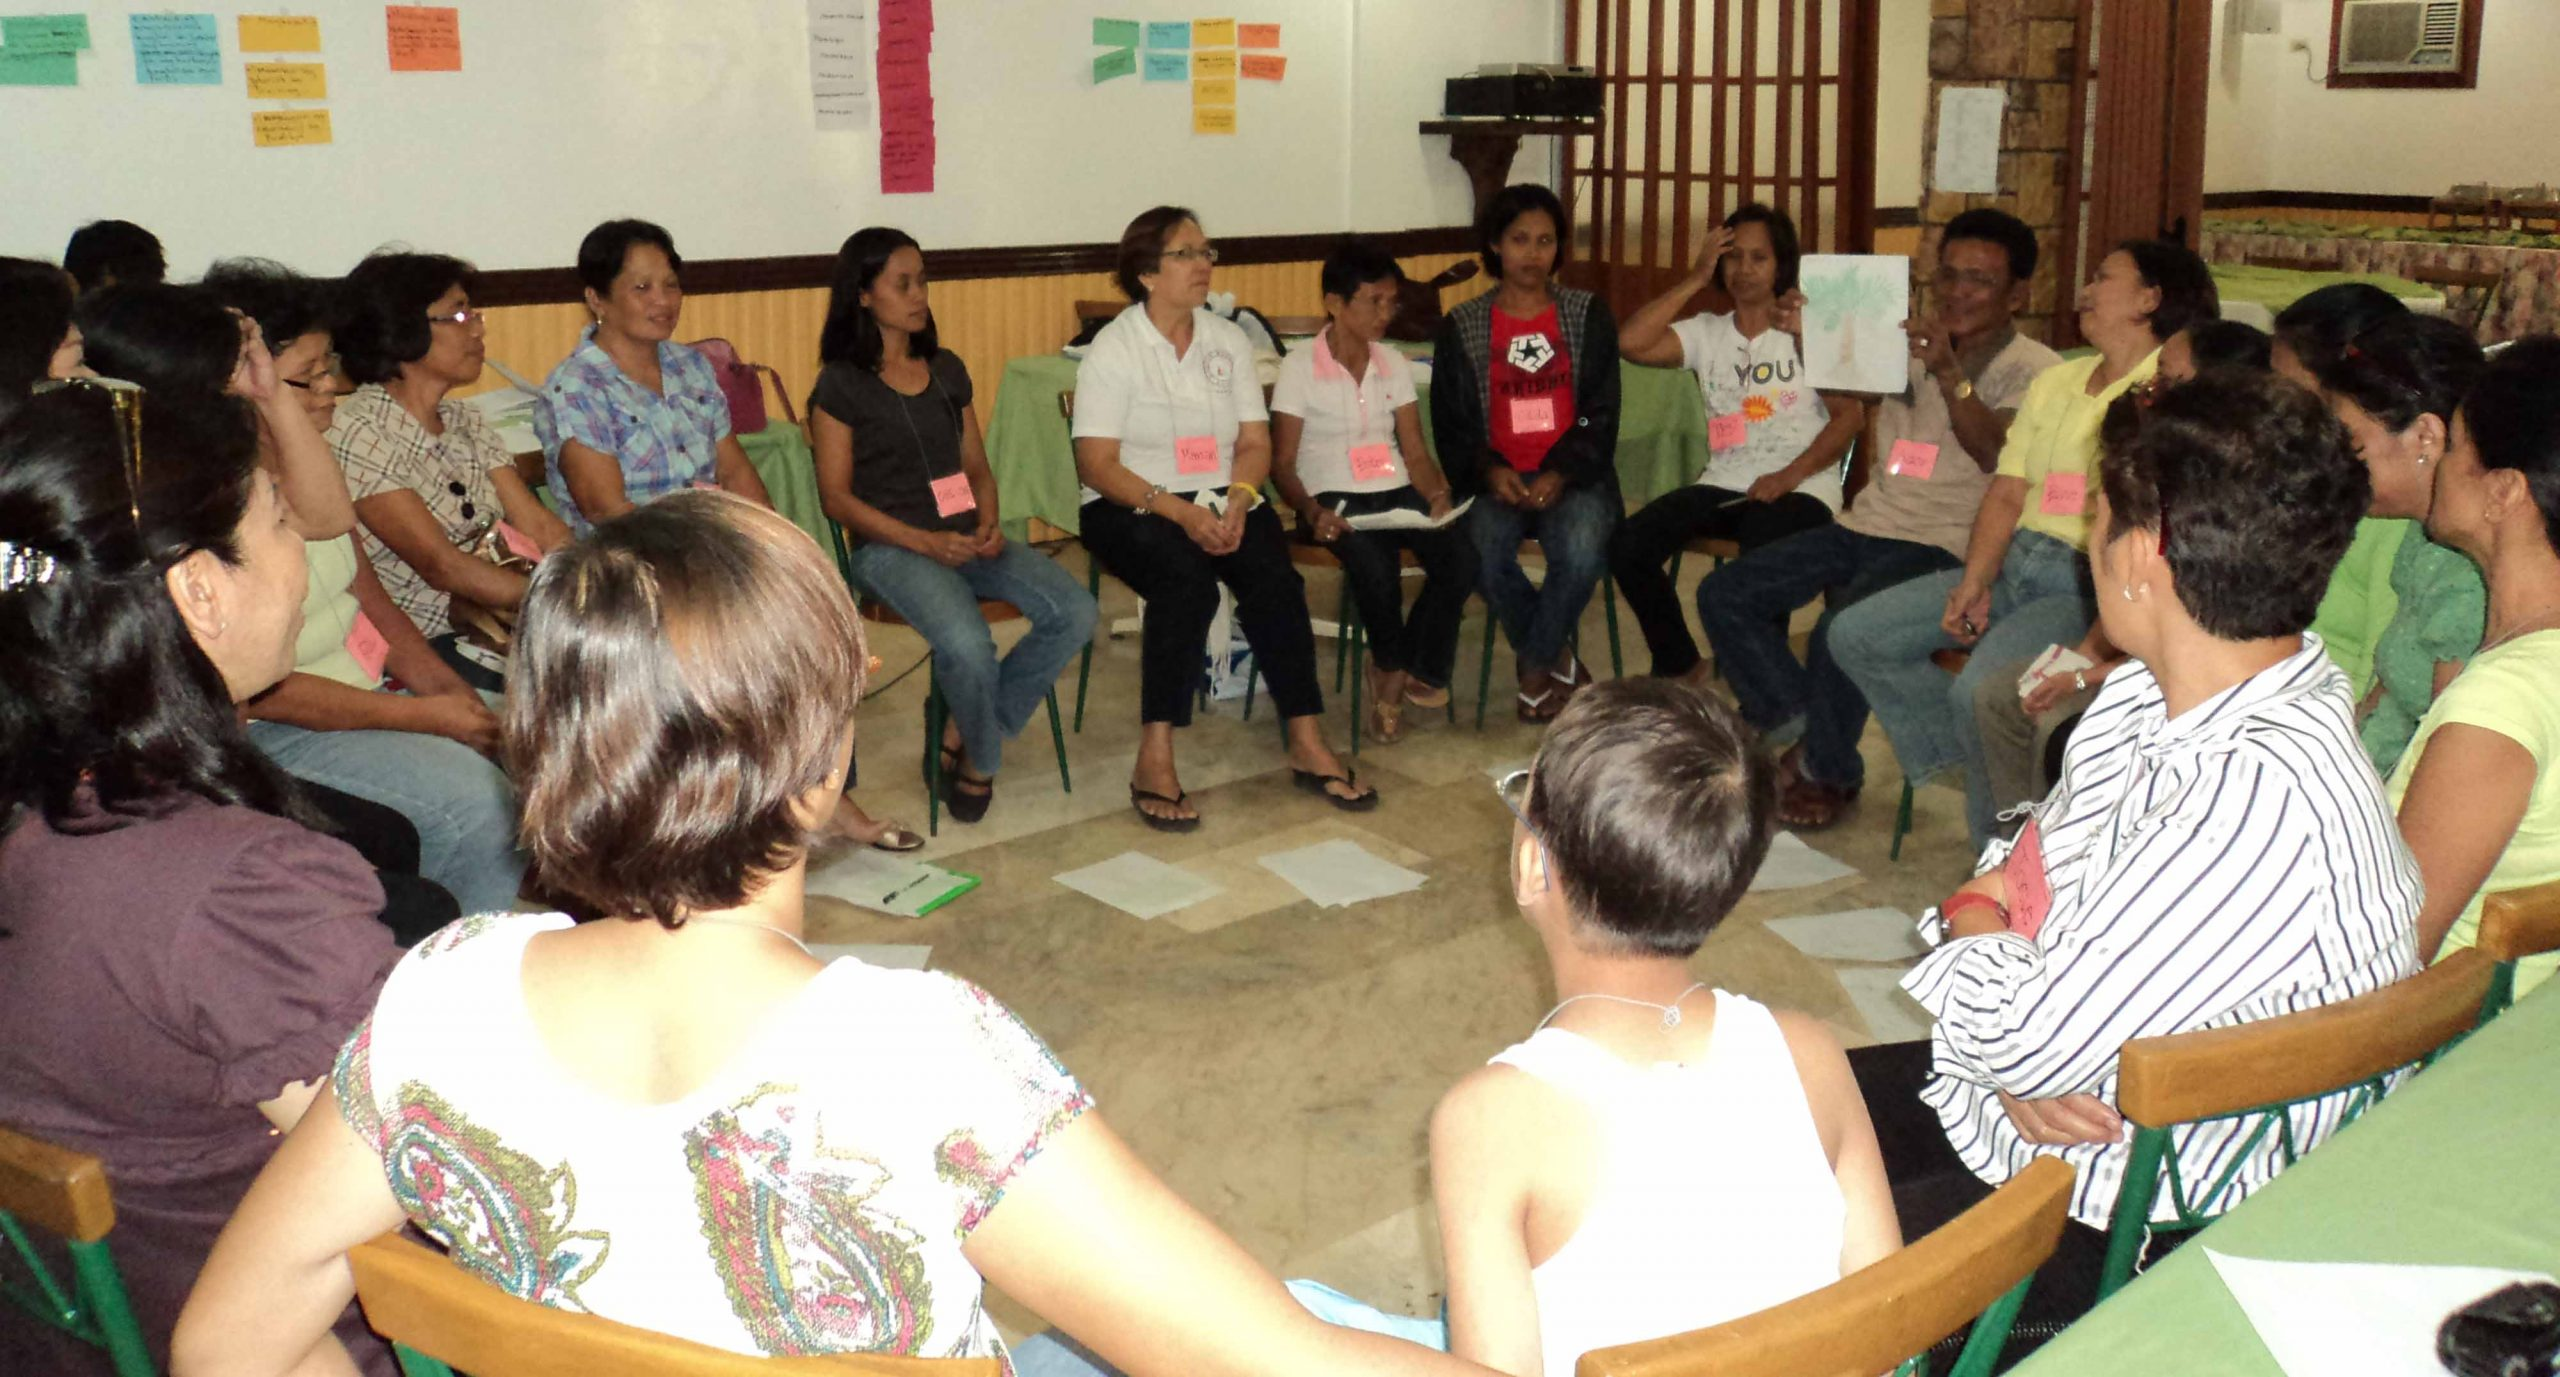 group sharing during a capacity-building activity